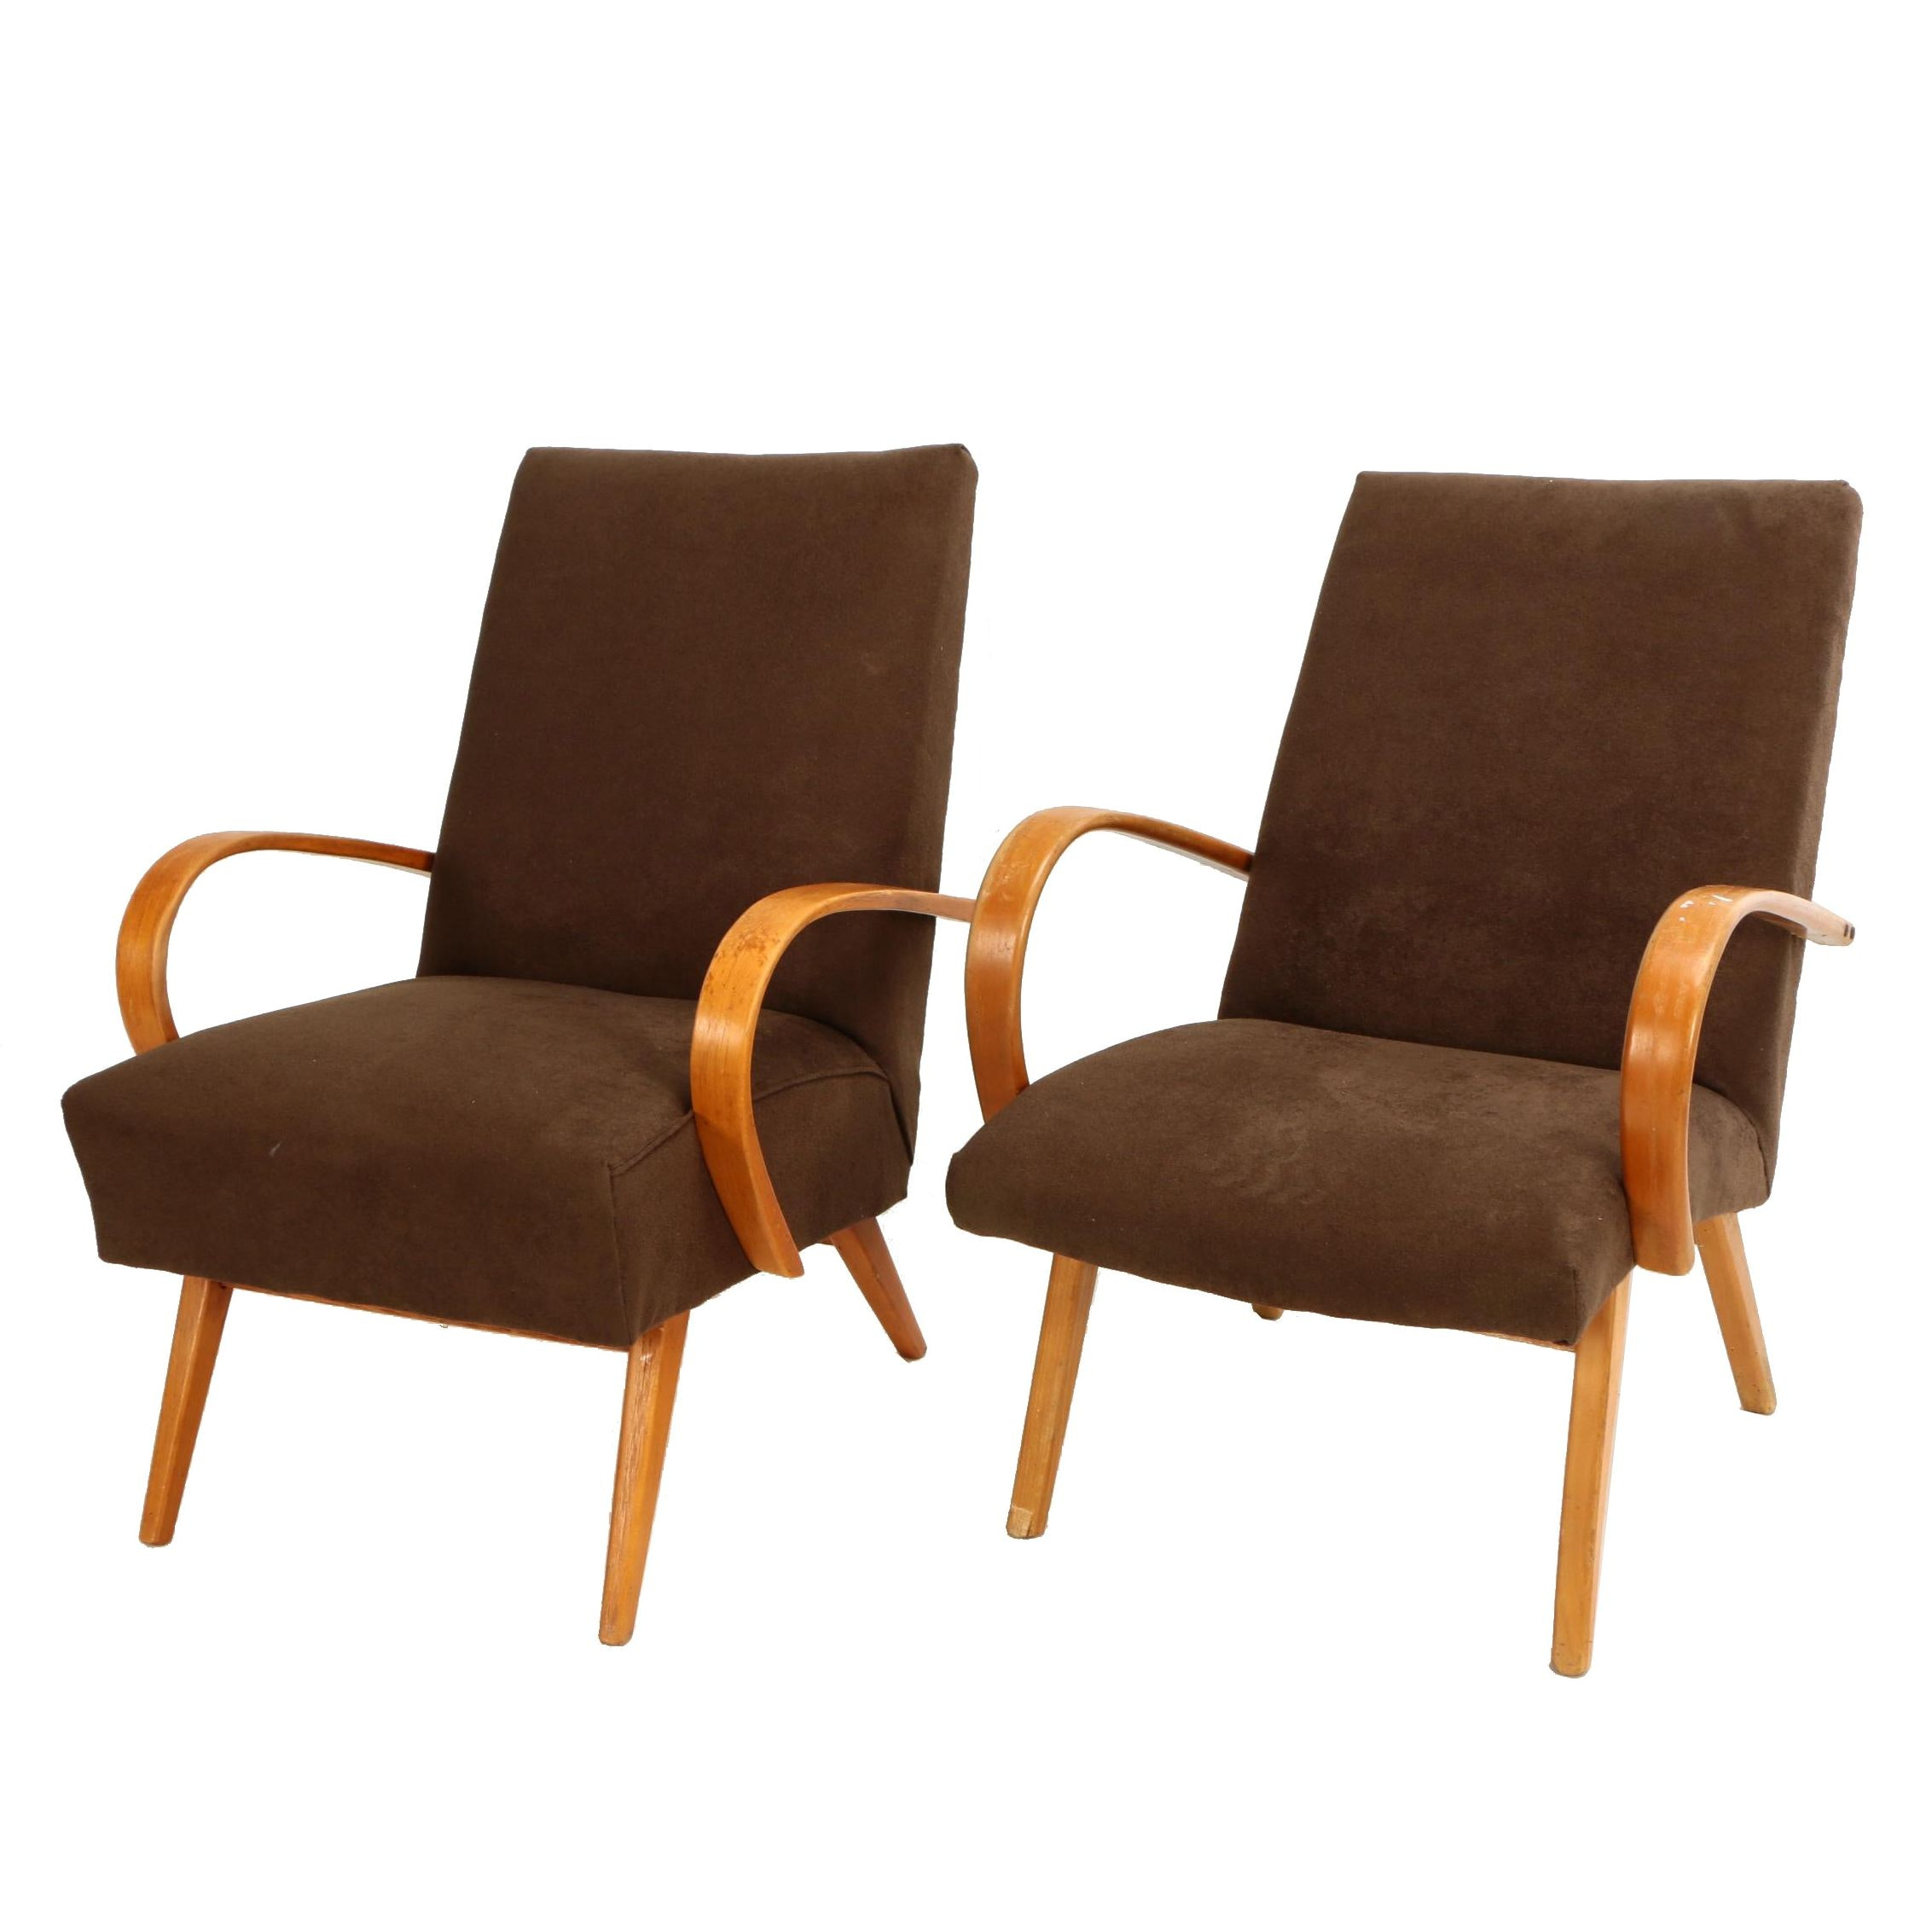 Czech Modern Bentwood Lounge Chairs, 20th Century